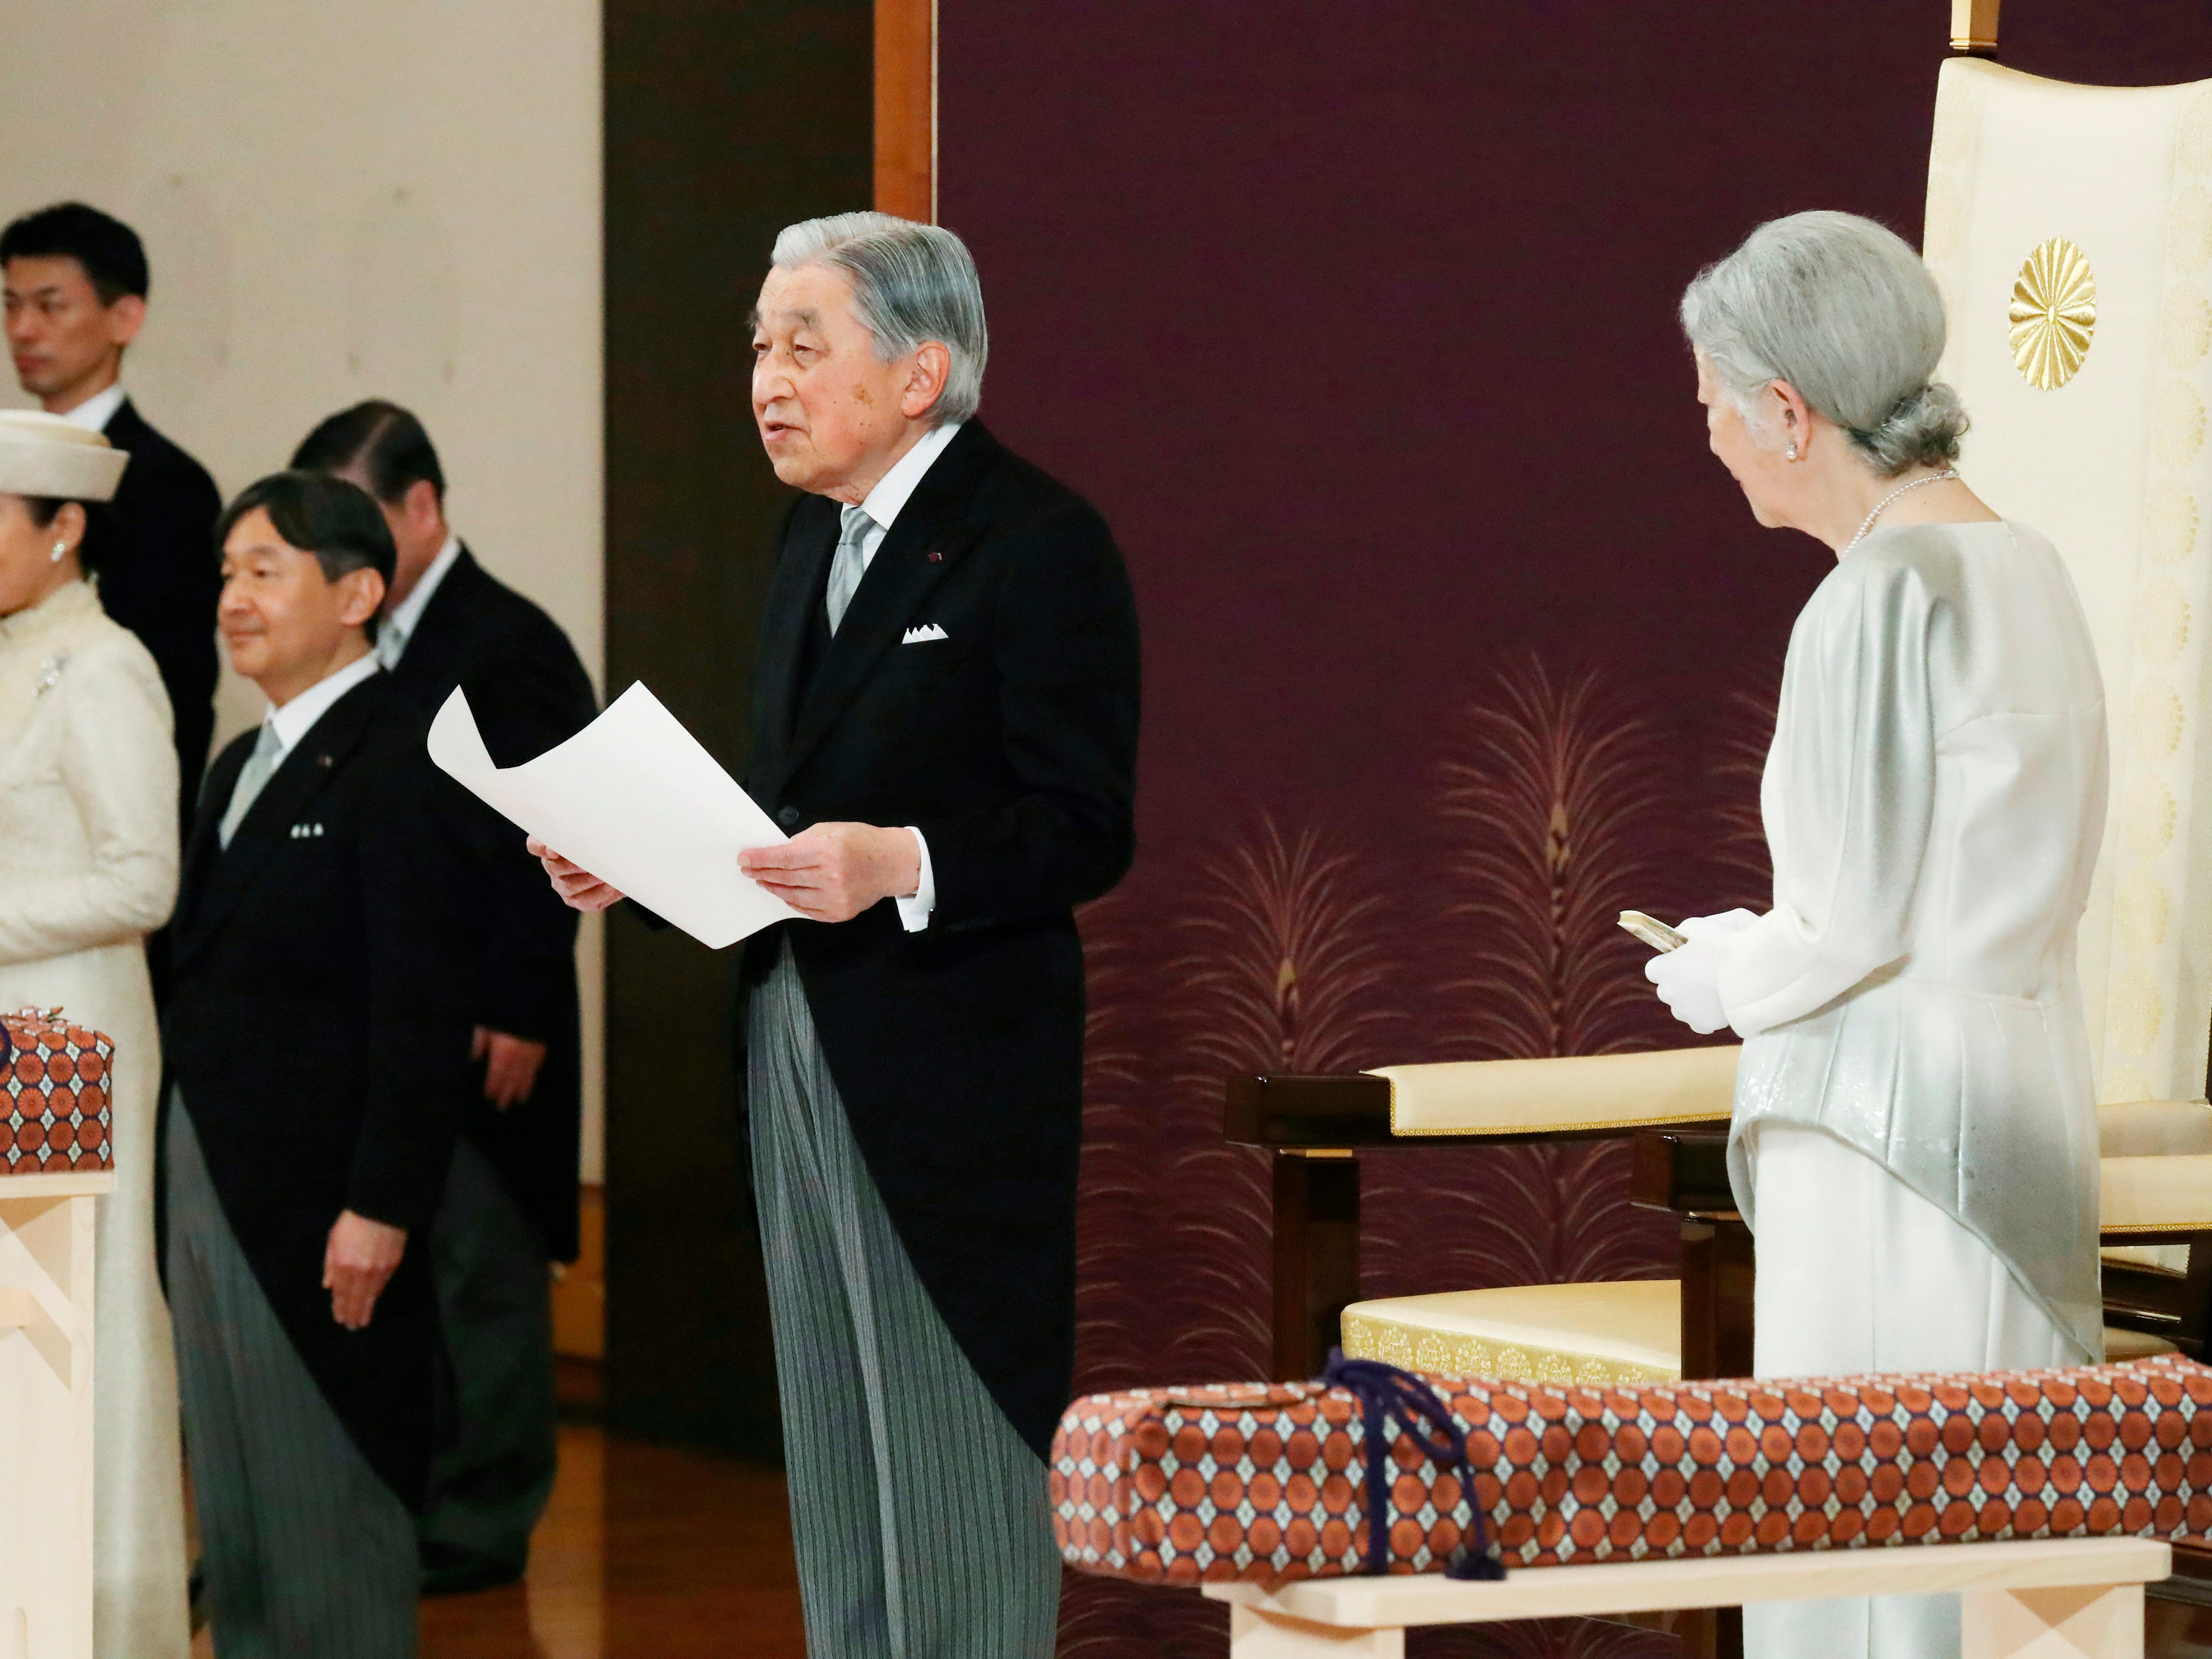 Japan's Emperor Akihitoa addresses the ceremony of his abdication in front of other members of the royal families and top government officials at the Imperial Palace in Tokyo, Tuesday, April 30, 2019. The 85-year-old ends his three-decade reign on Tuesday as his son Crown Prince Naruhito, second from left, will ascend the Chrysanthemum throne on Wednesday. Empress Michiko is at right and Crown Princess Masako is at left.